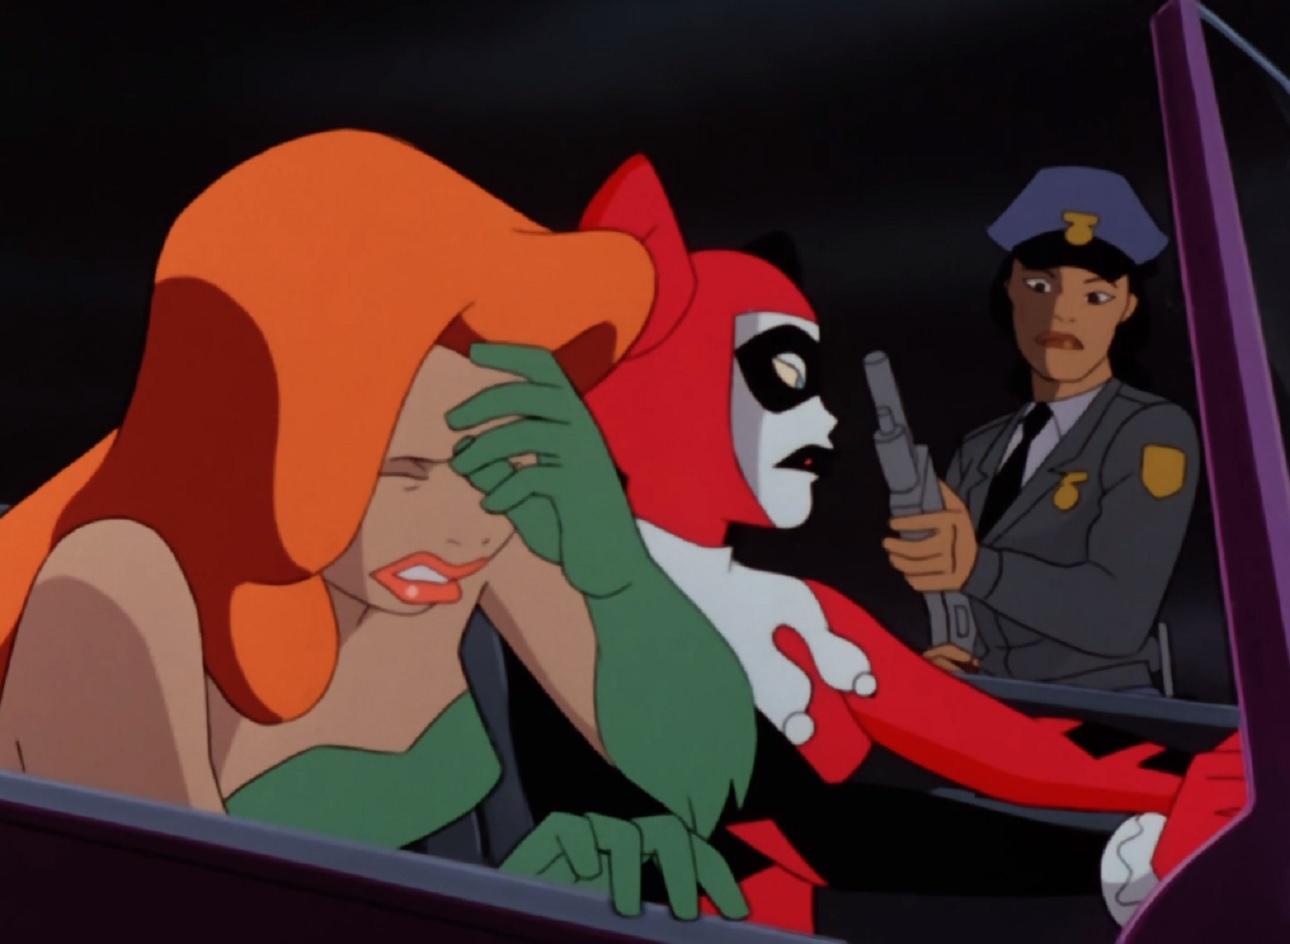 montoya-batman-the-animated-series.jpg